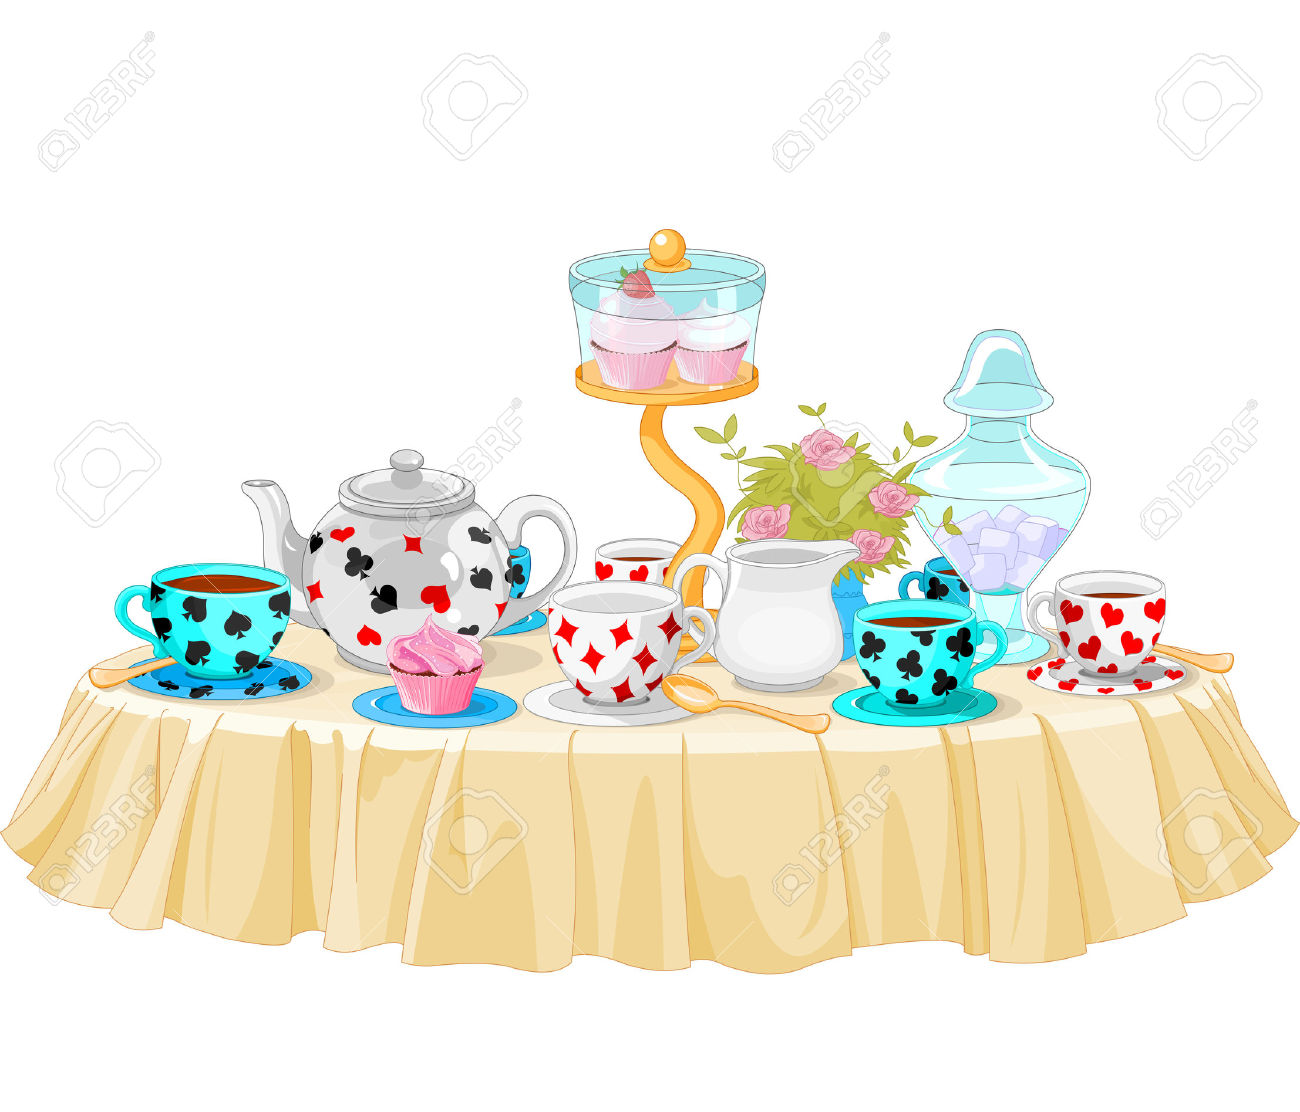 Decorated Table Clipart.